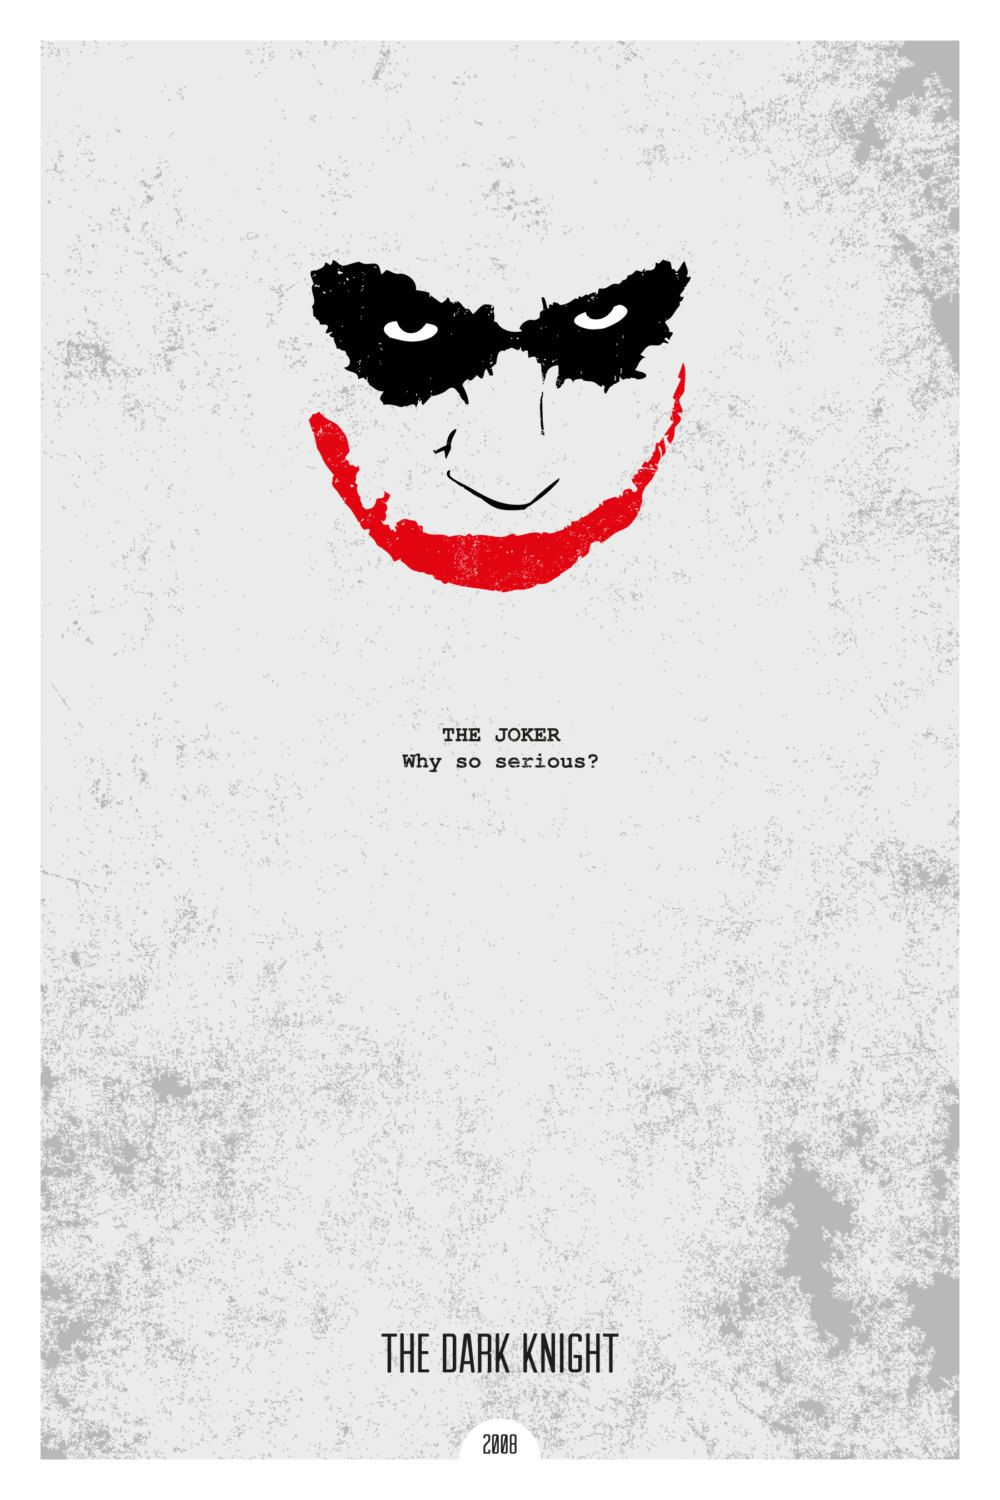 THE DARK KNIGHT 12x18 Minimal Movie Poster Print of Quote from the film.